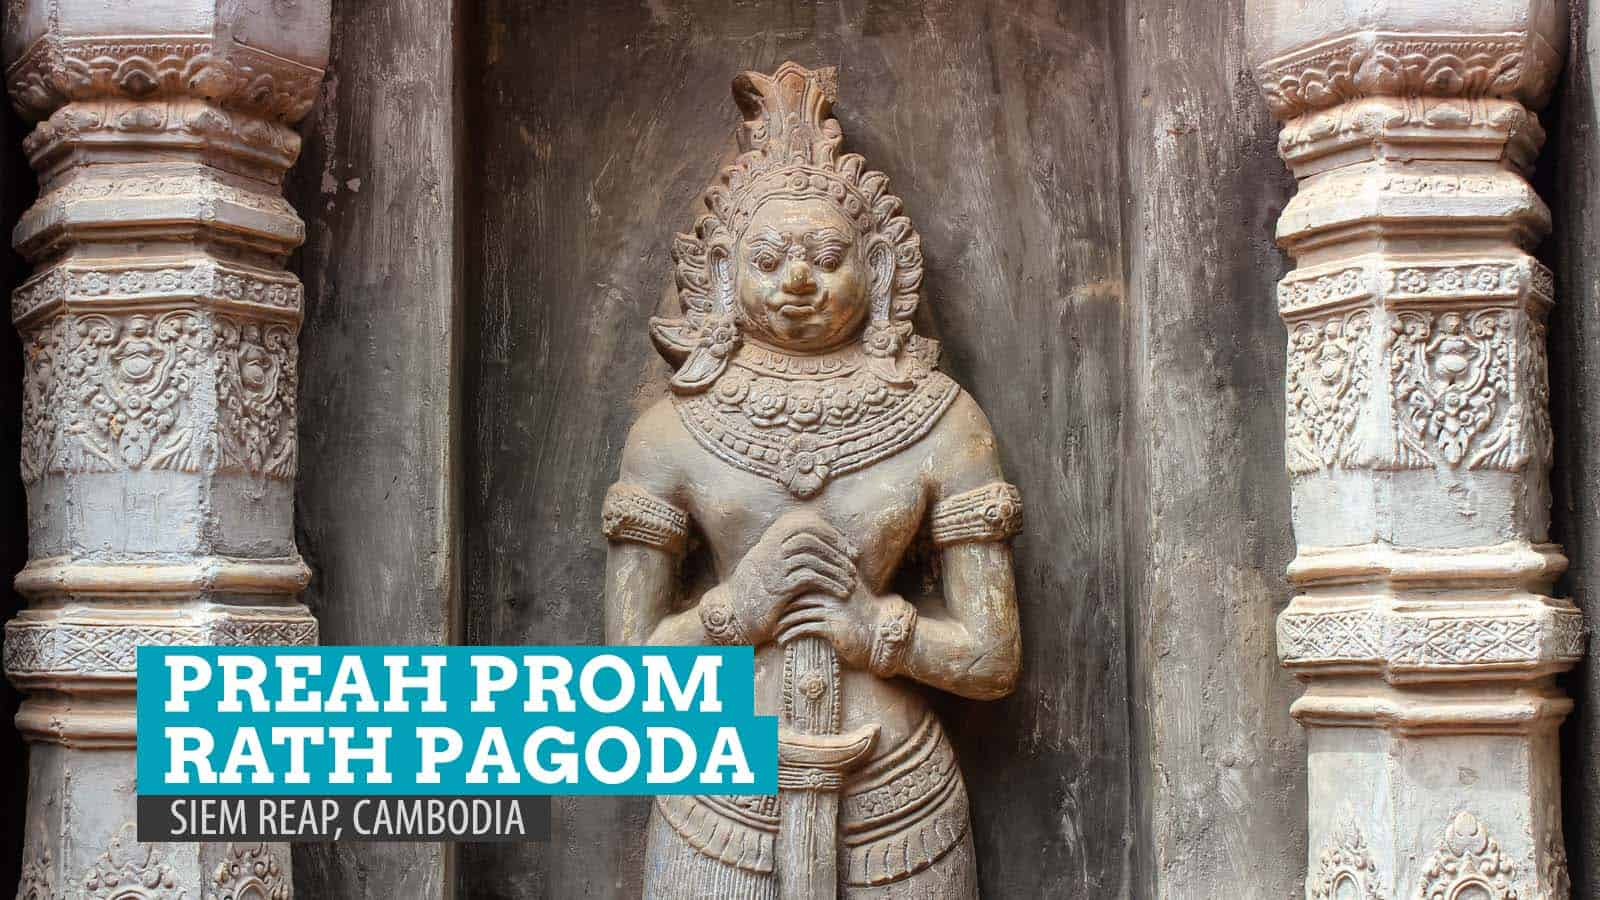 Preah Prom Rath Pagoda: The Gracious Souls of Siem Reap, Cambodia